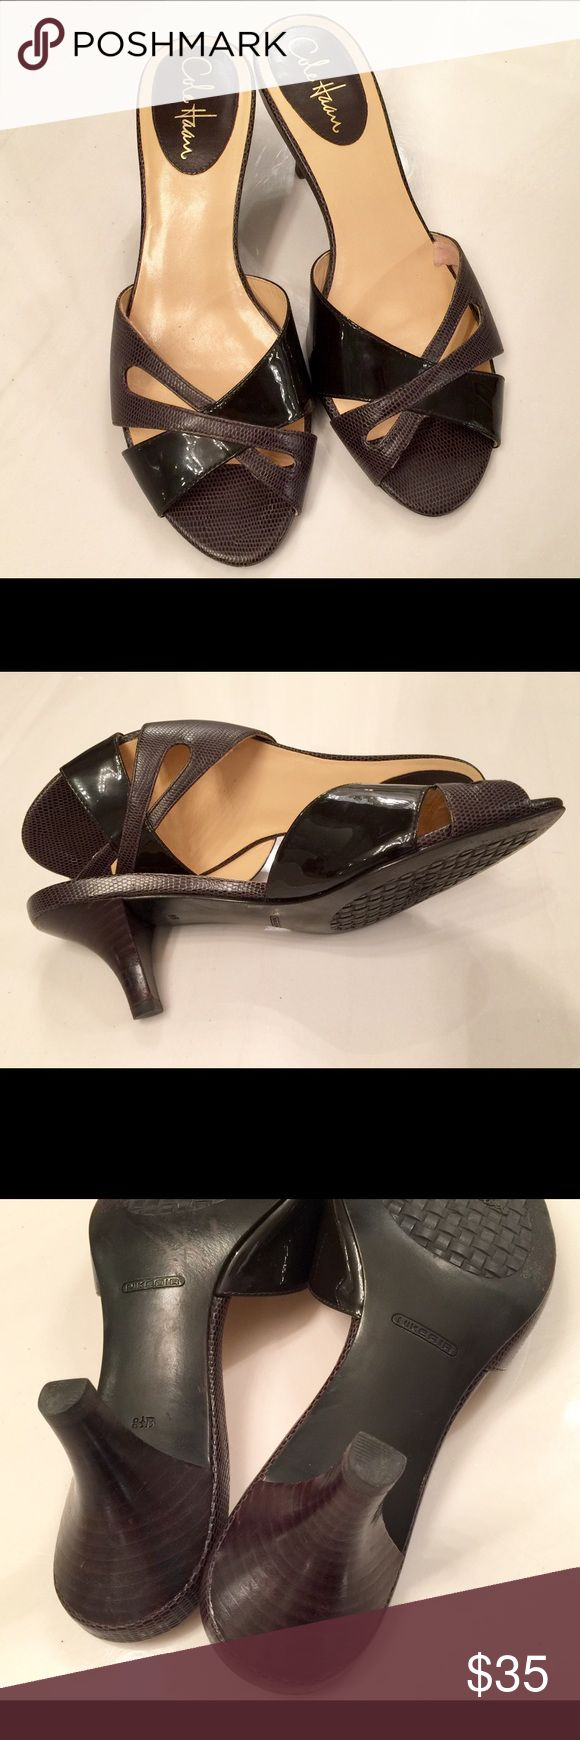 AUTHENTIC Cole Haan ladies sandals; women's shoes Cole Haan women's sandals; ladies shoes; footwear. Color: brown and cream. Made with Nike Air cushioning for comfort. Height: 2.5inches. Size: 8.5B. AUTHENTIC and EUC. Cole Haan Shoes Sandals